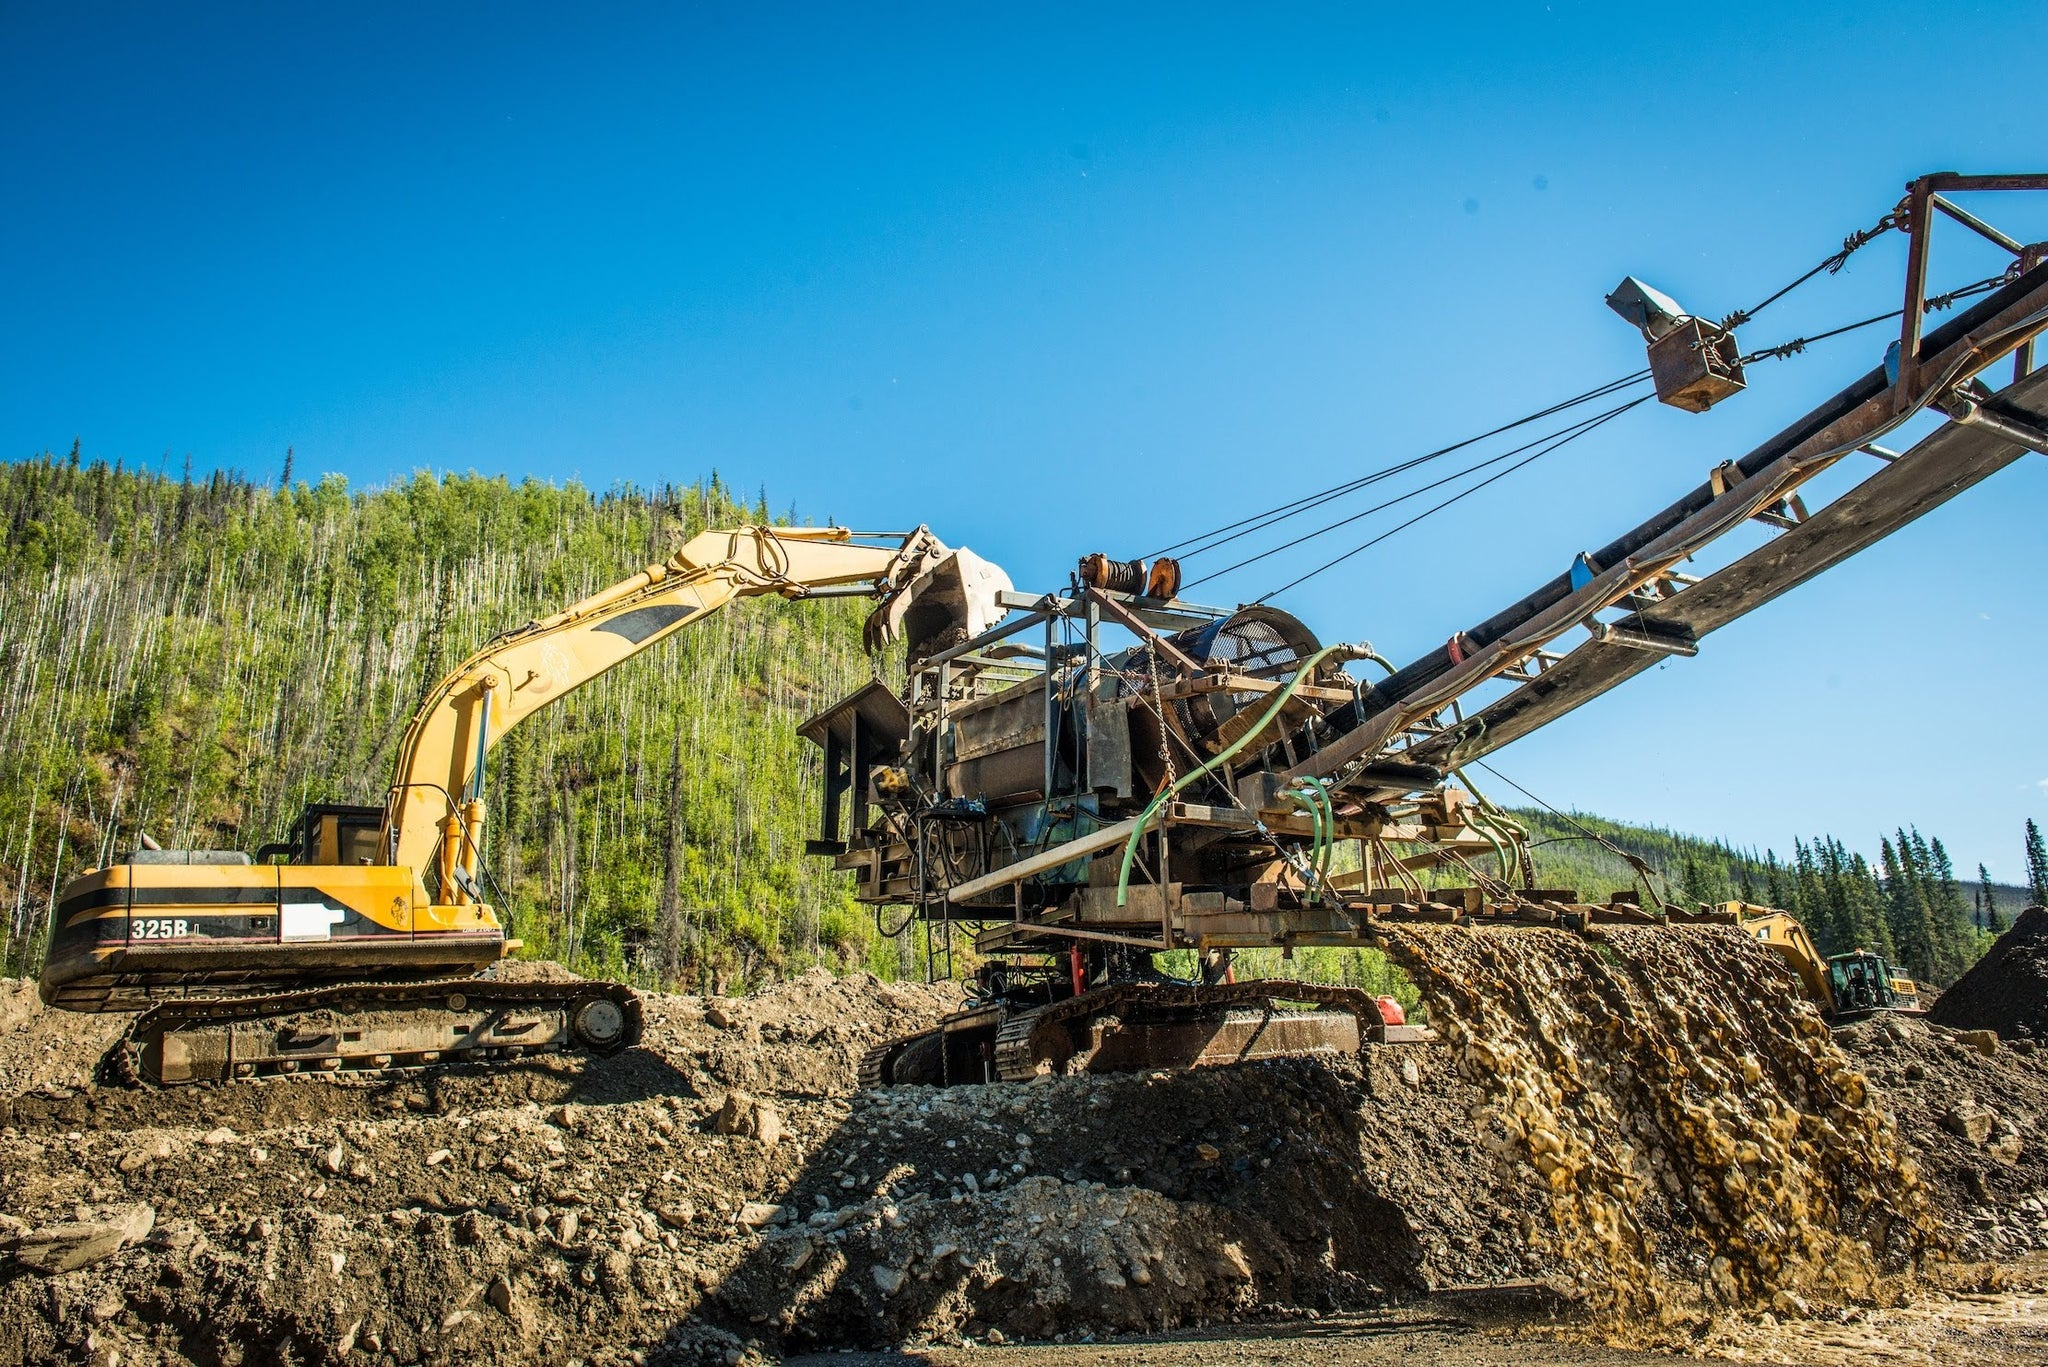 Mining for gold in the Yukon